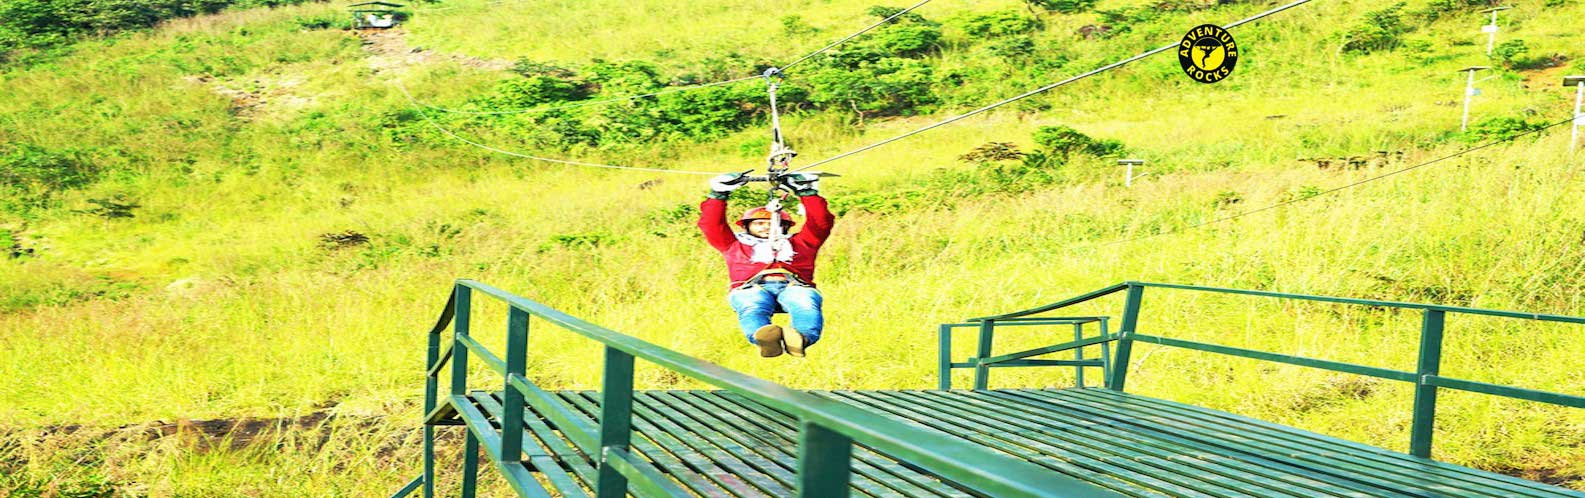 Zip Line Manufacturers in Delhi